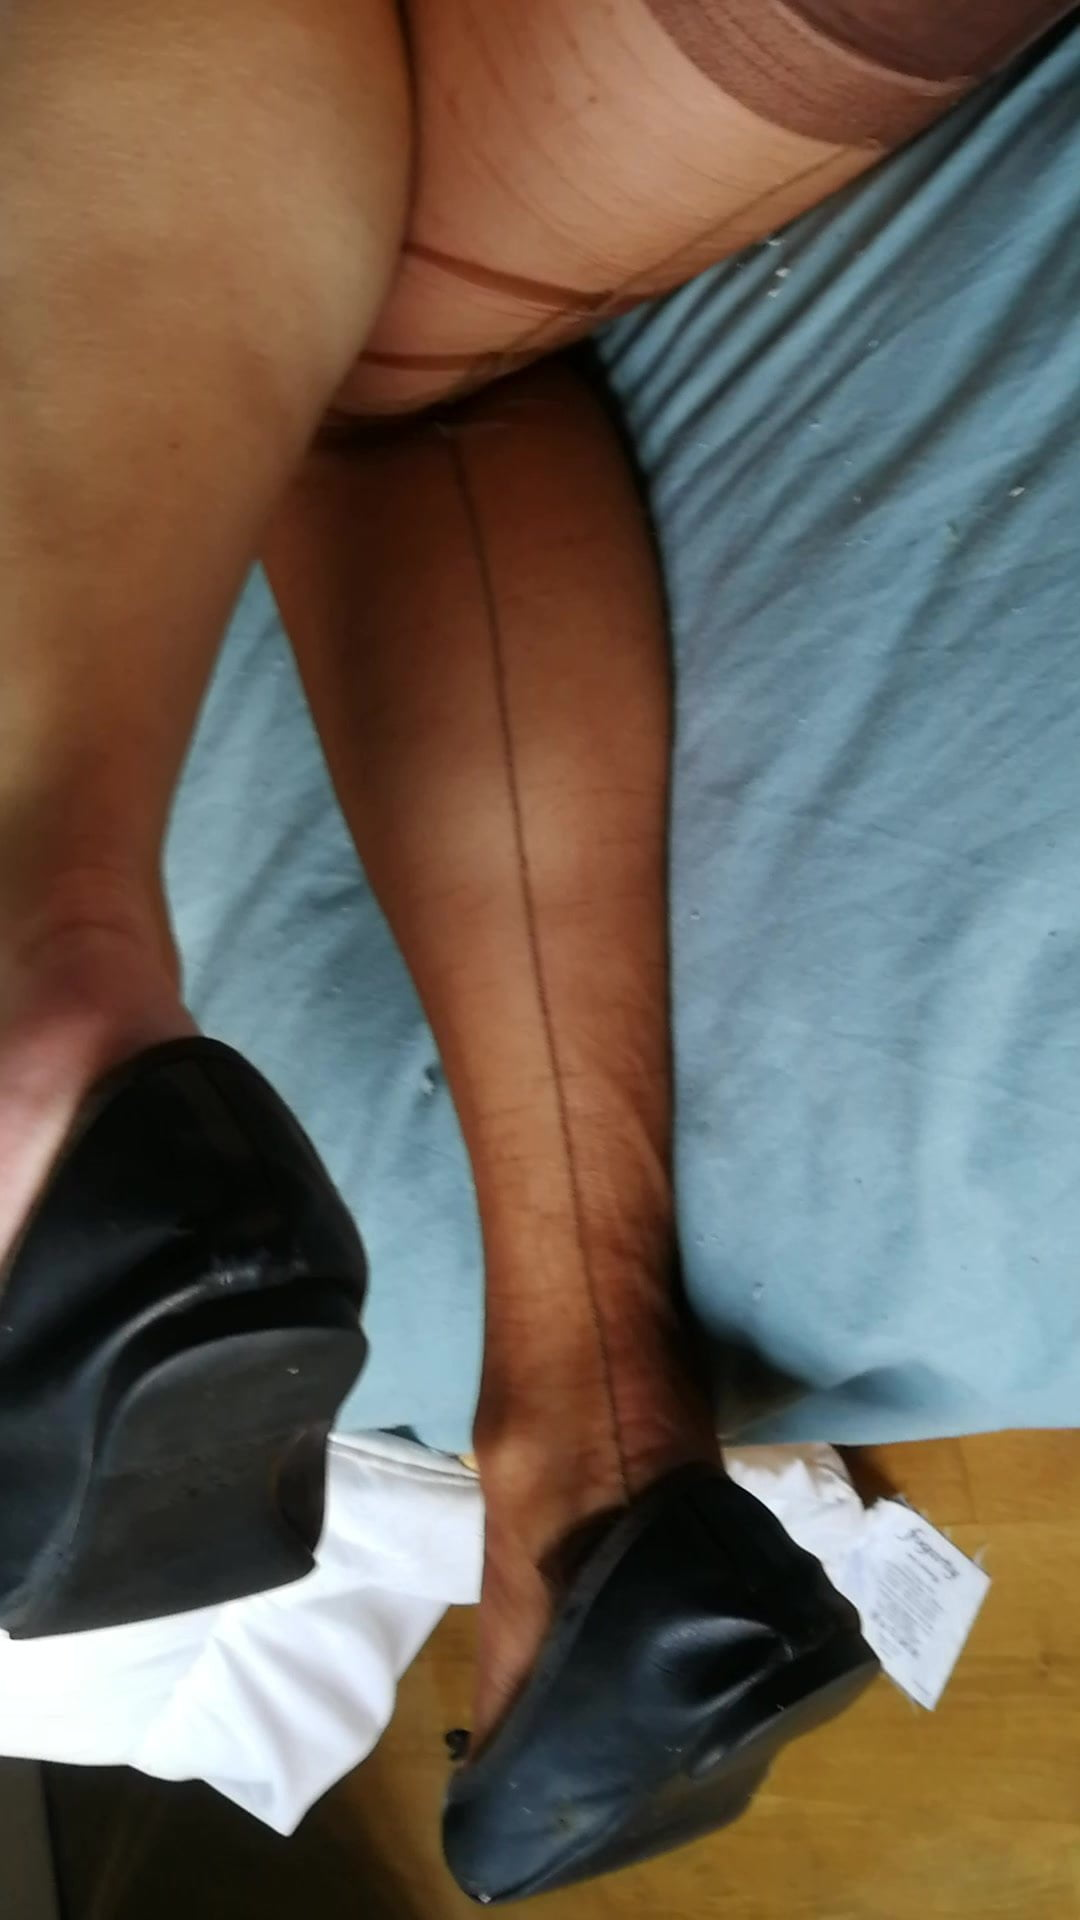 dildo and anal play in nylons